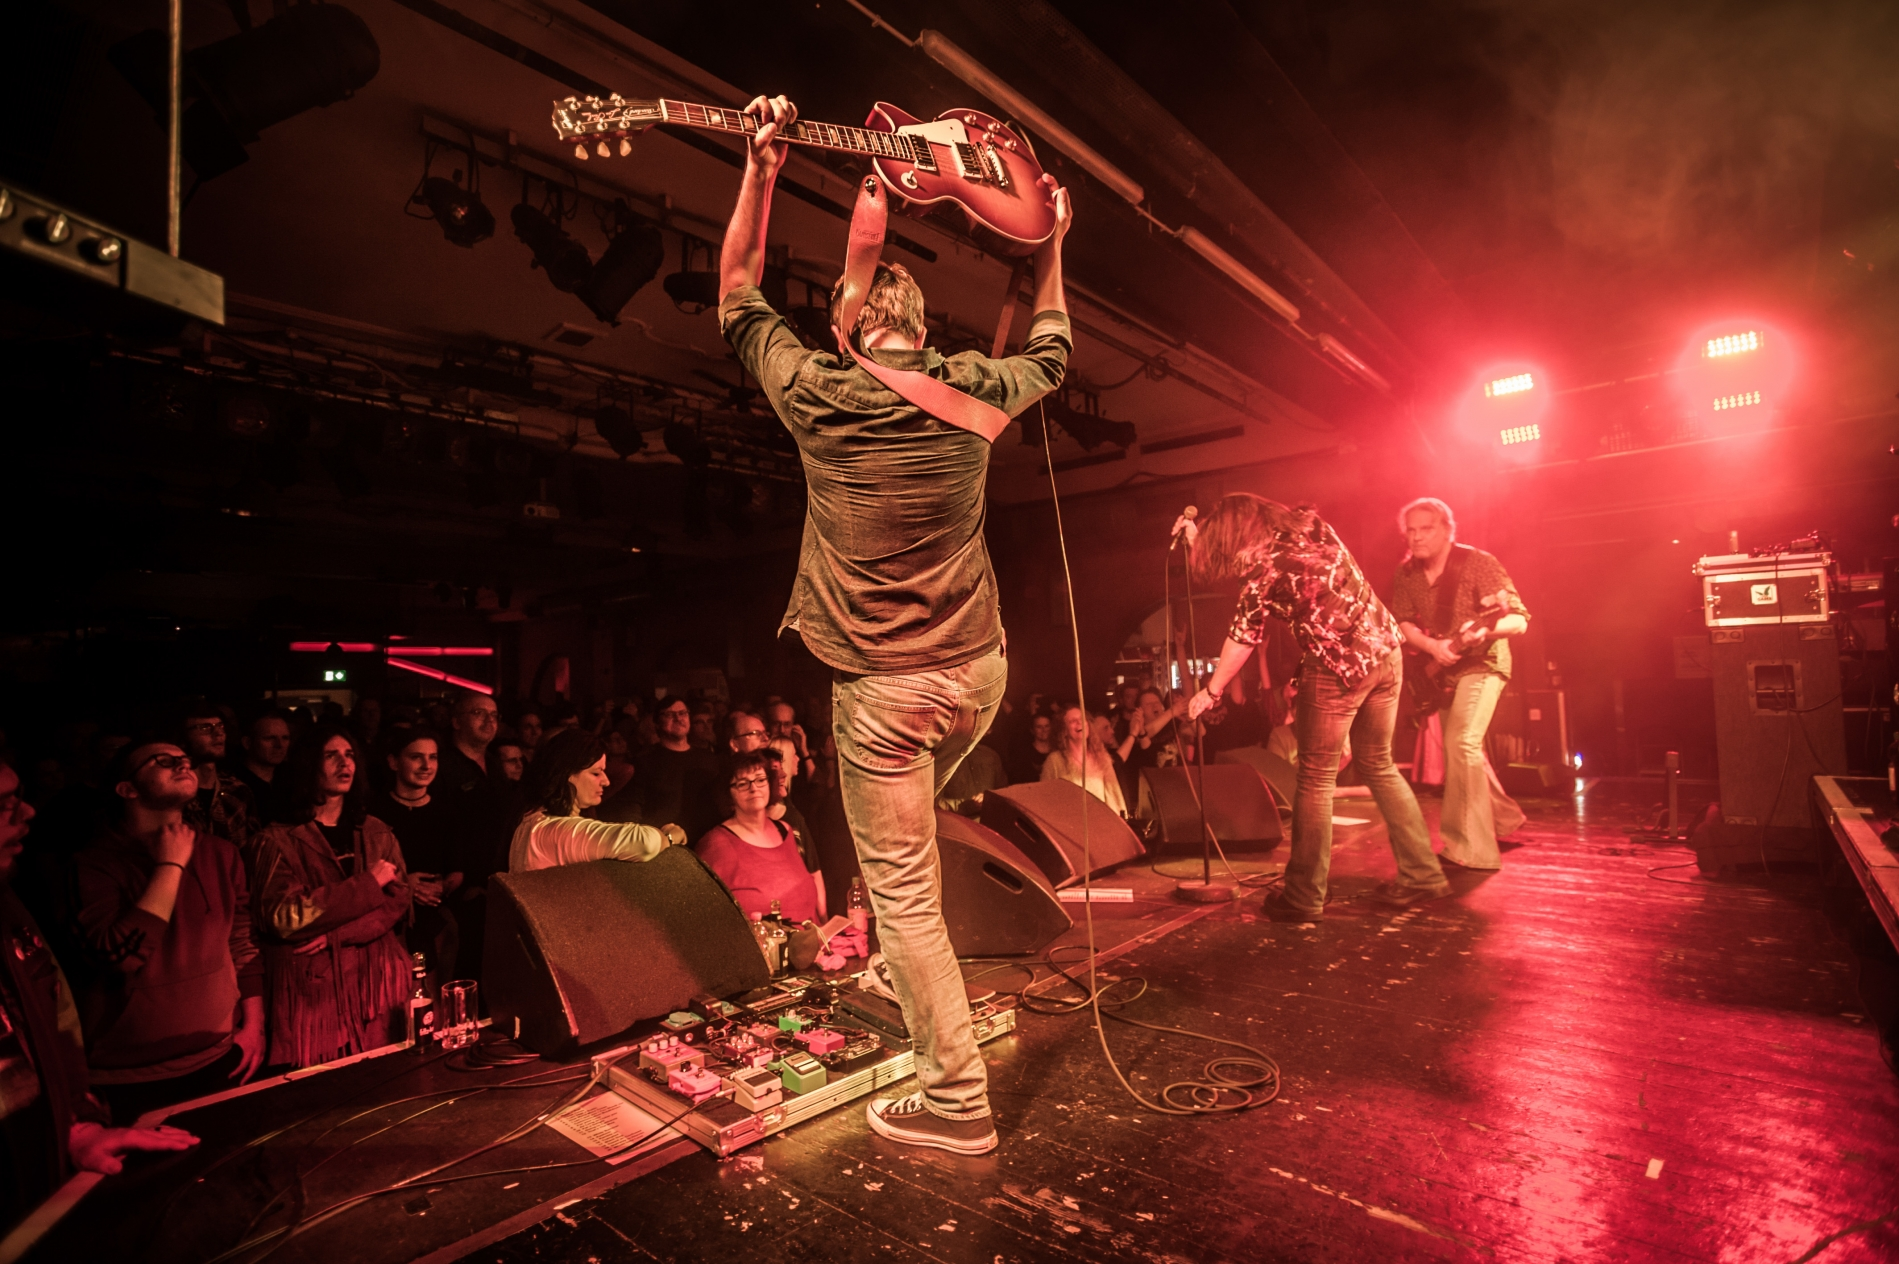 Mad_Zeppelin__2019_02_08_Mad_Zeppelin_Collo-Saal_Aschaffenburg_D7C_1123_